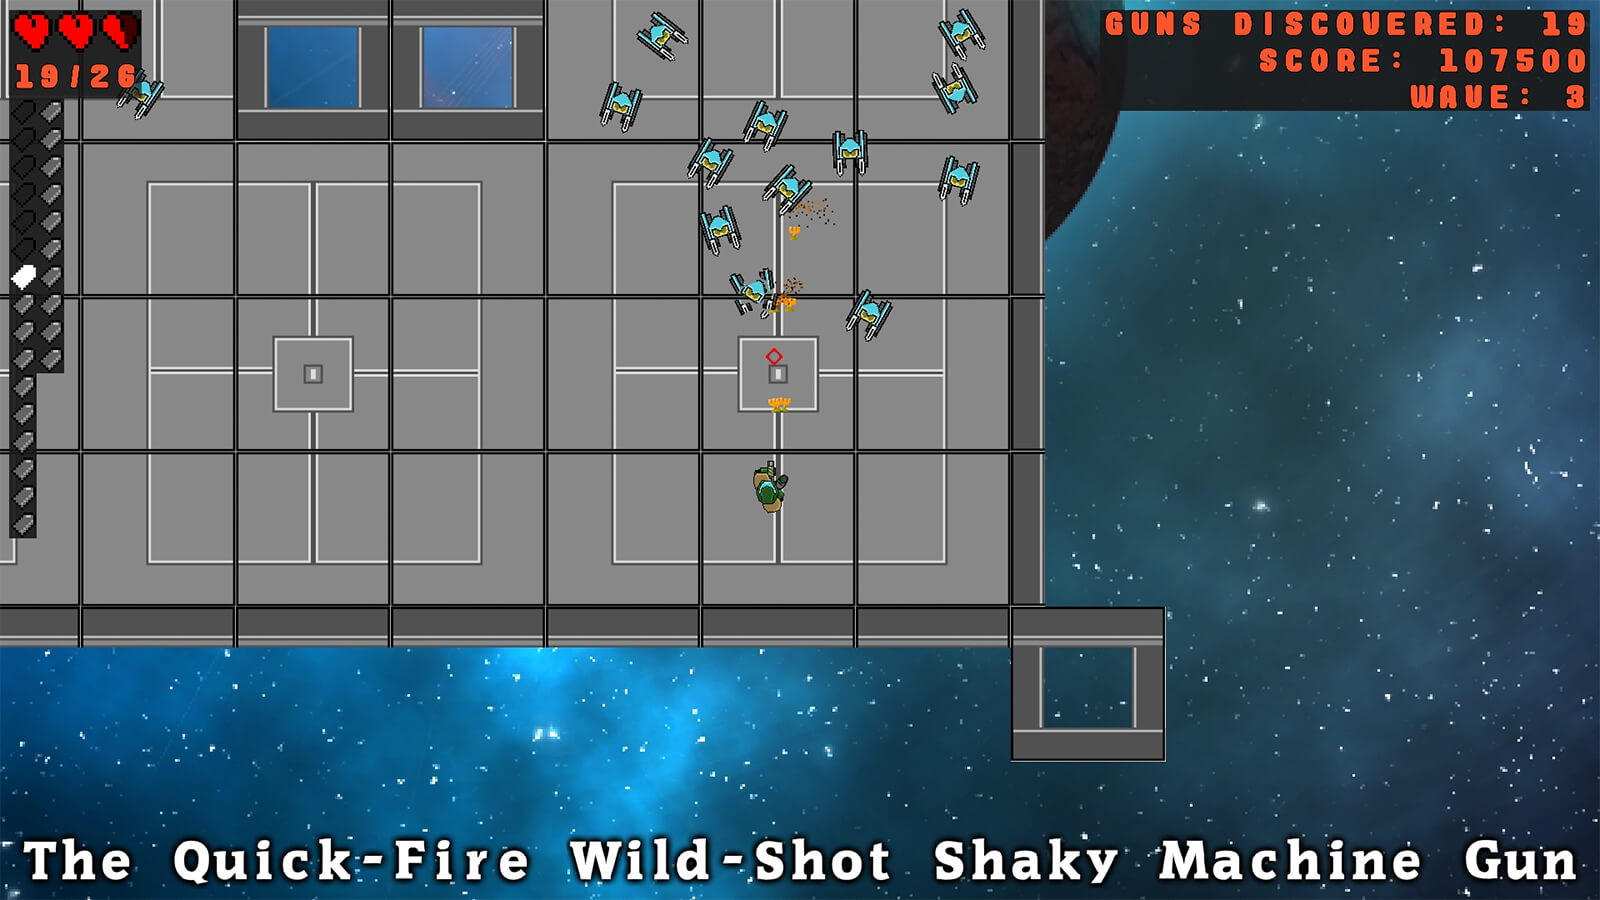 A wave of robots attacks the player, who is wielding The Quick-Fire Wild-Shot Shaky Machine Gun.